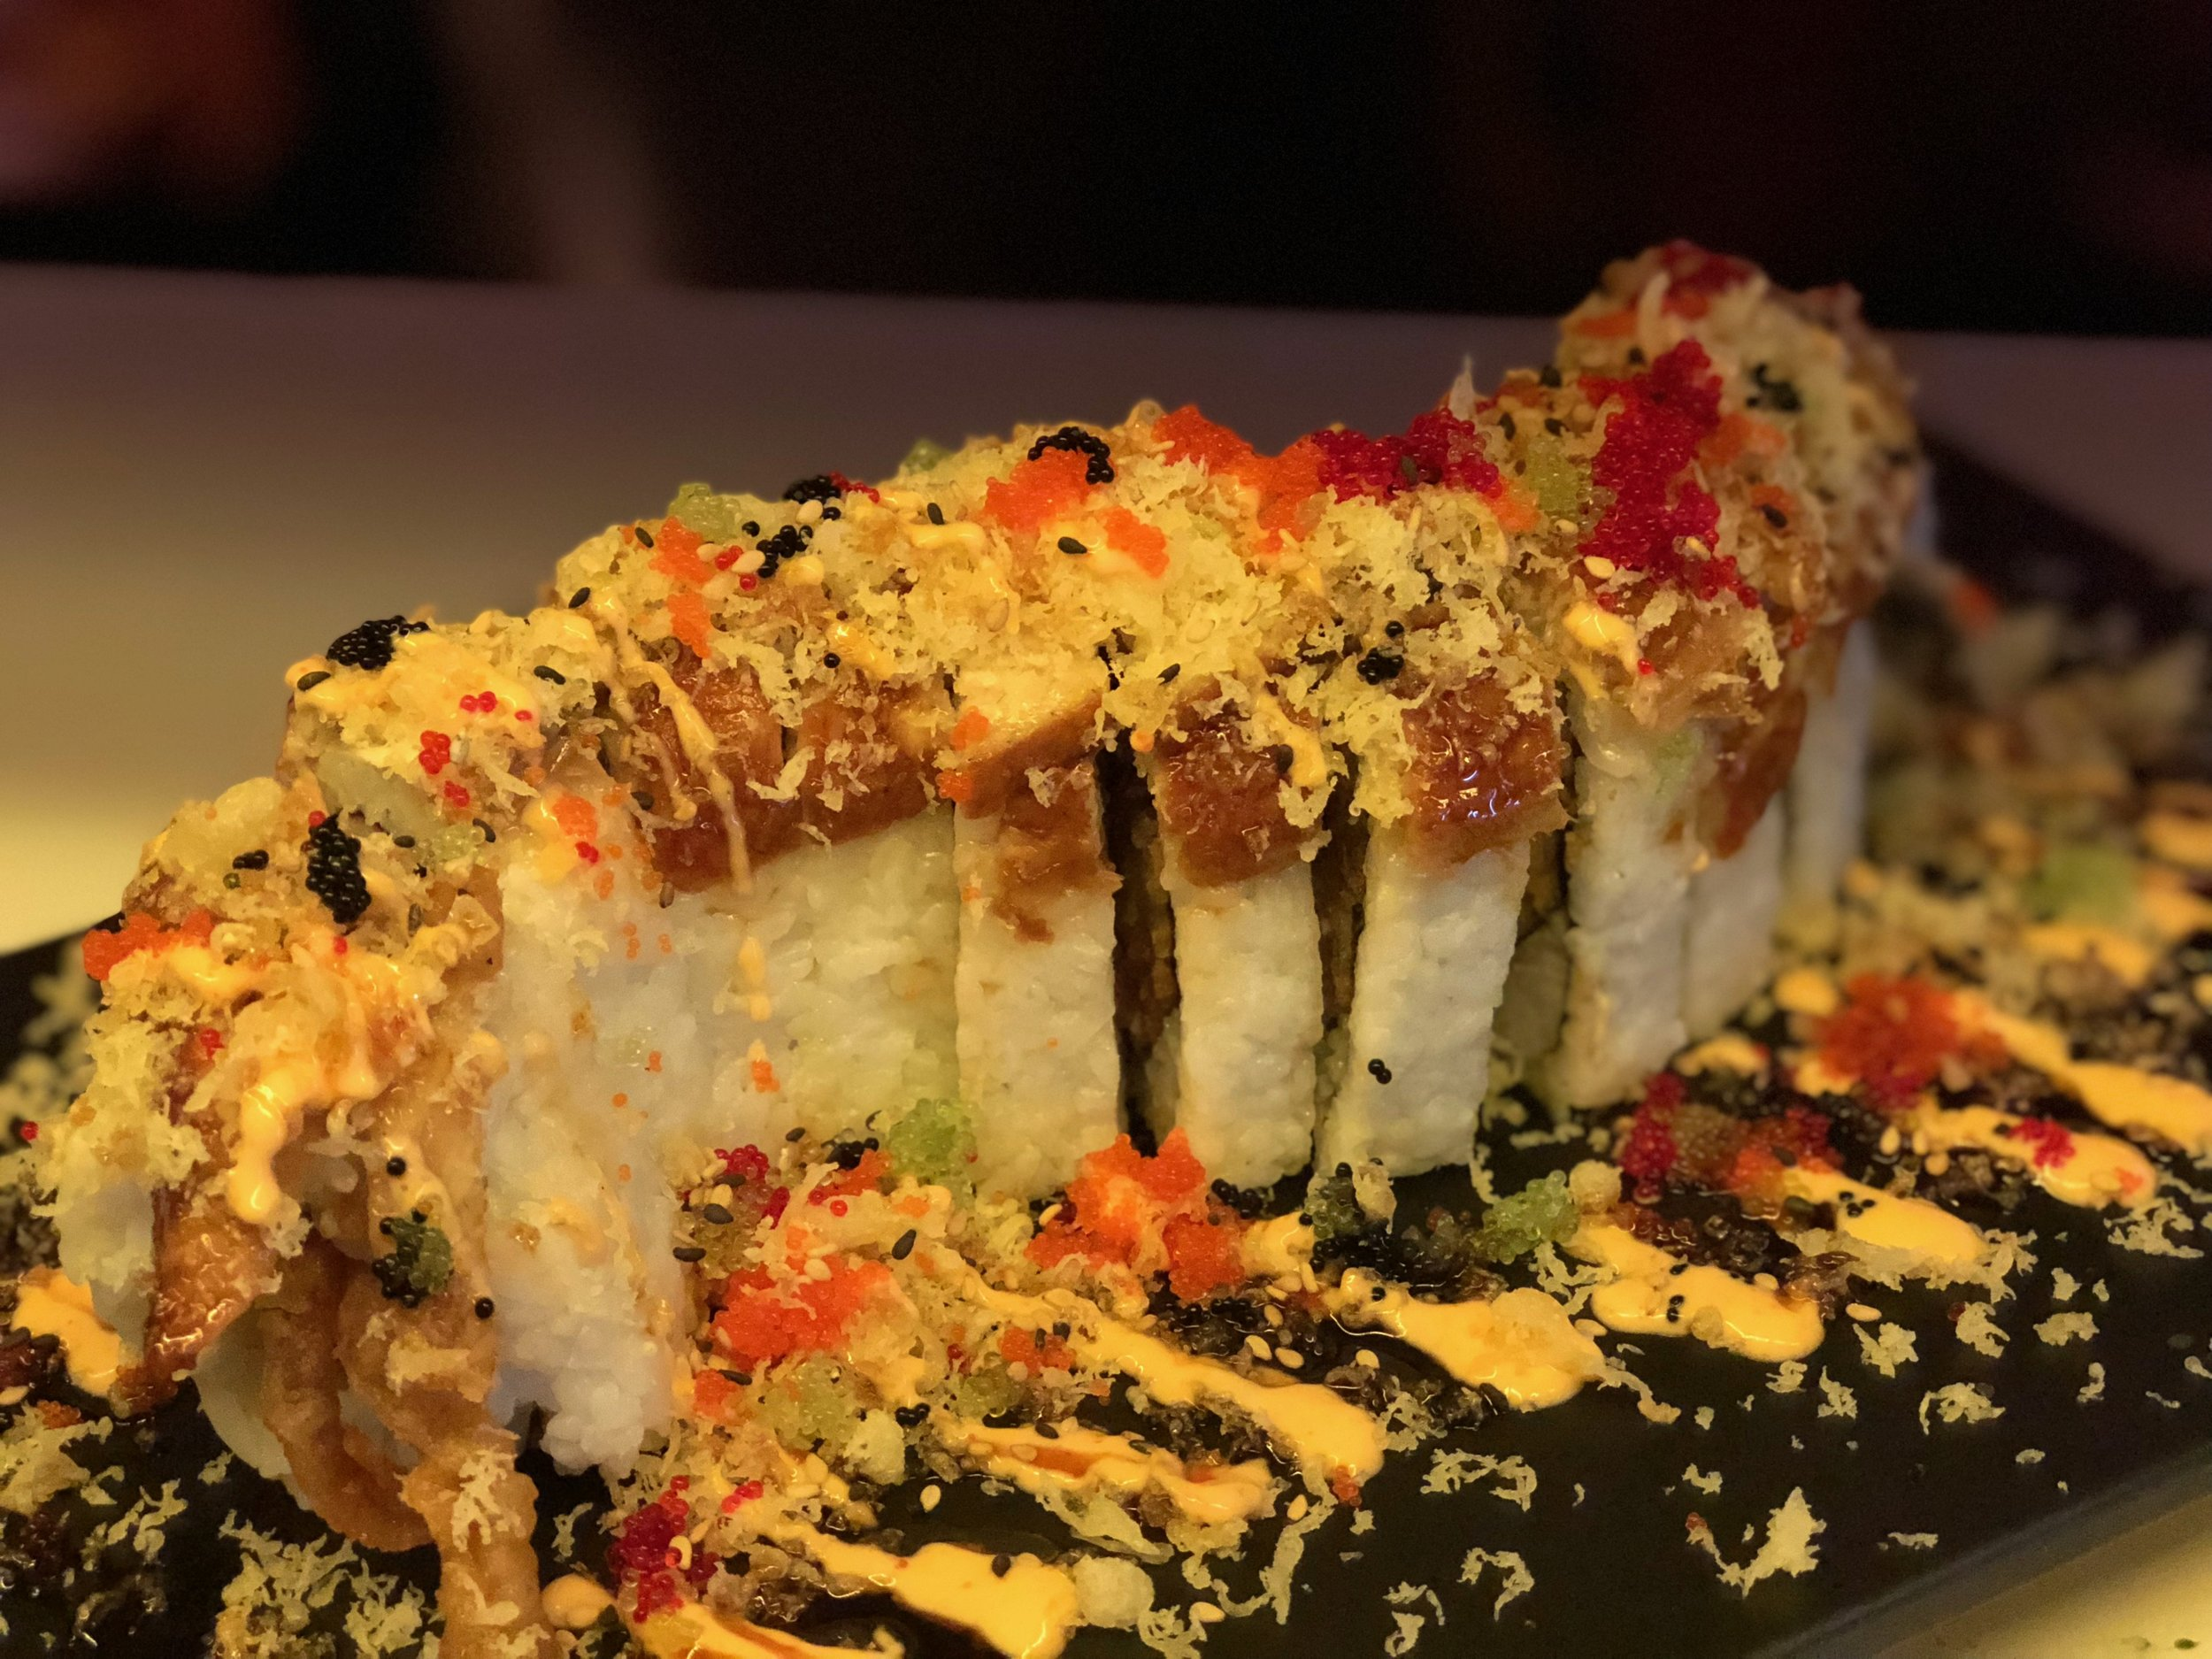 Monster Roll - Soft Shell Crab, Asparagus, Avocado, Krab, Cream Cheese topped with Eel, Tempura flake, colorful fish egg, Spicy Mayo and Eel Sauce.